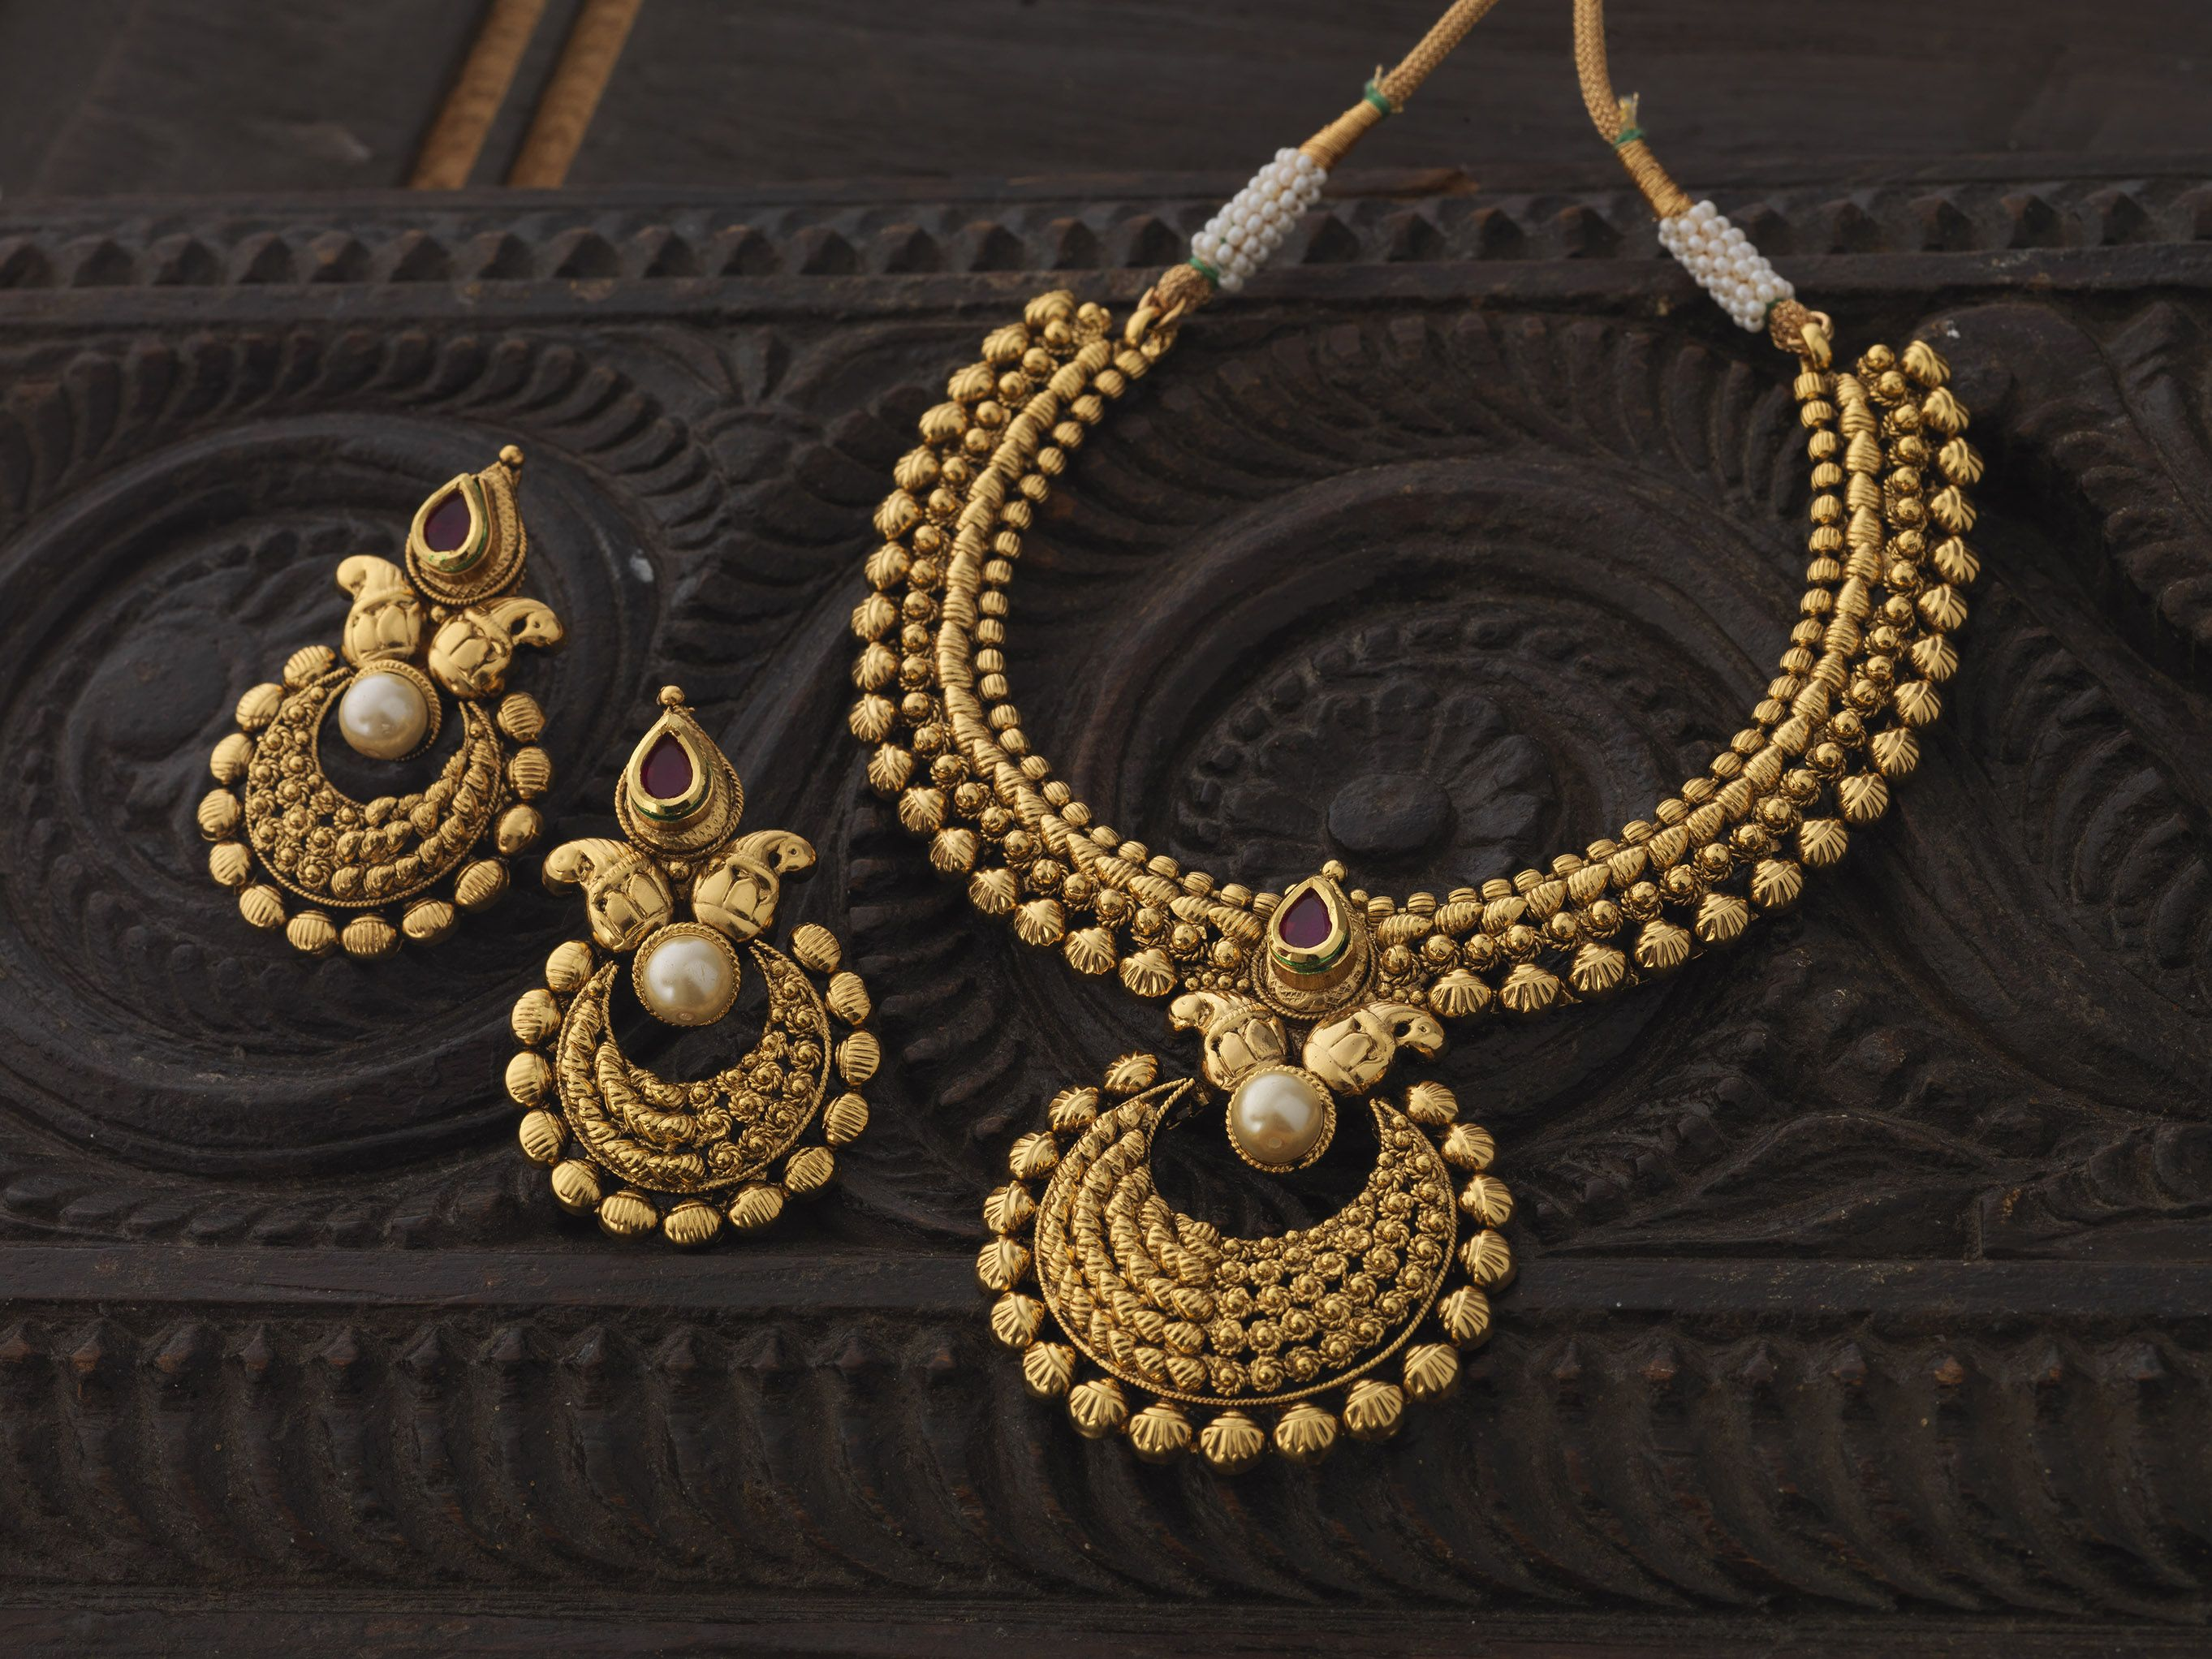 didi customs jewellery holds costume wardrobe jewelry many fashion and s indian blog traditions